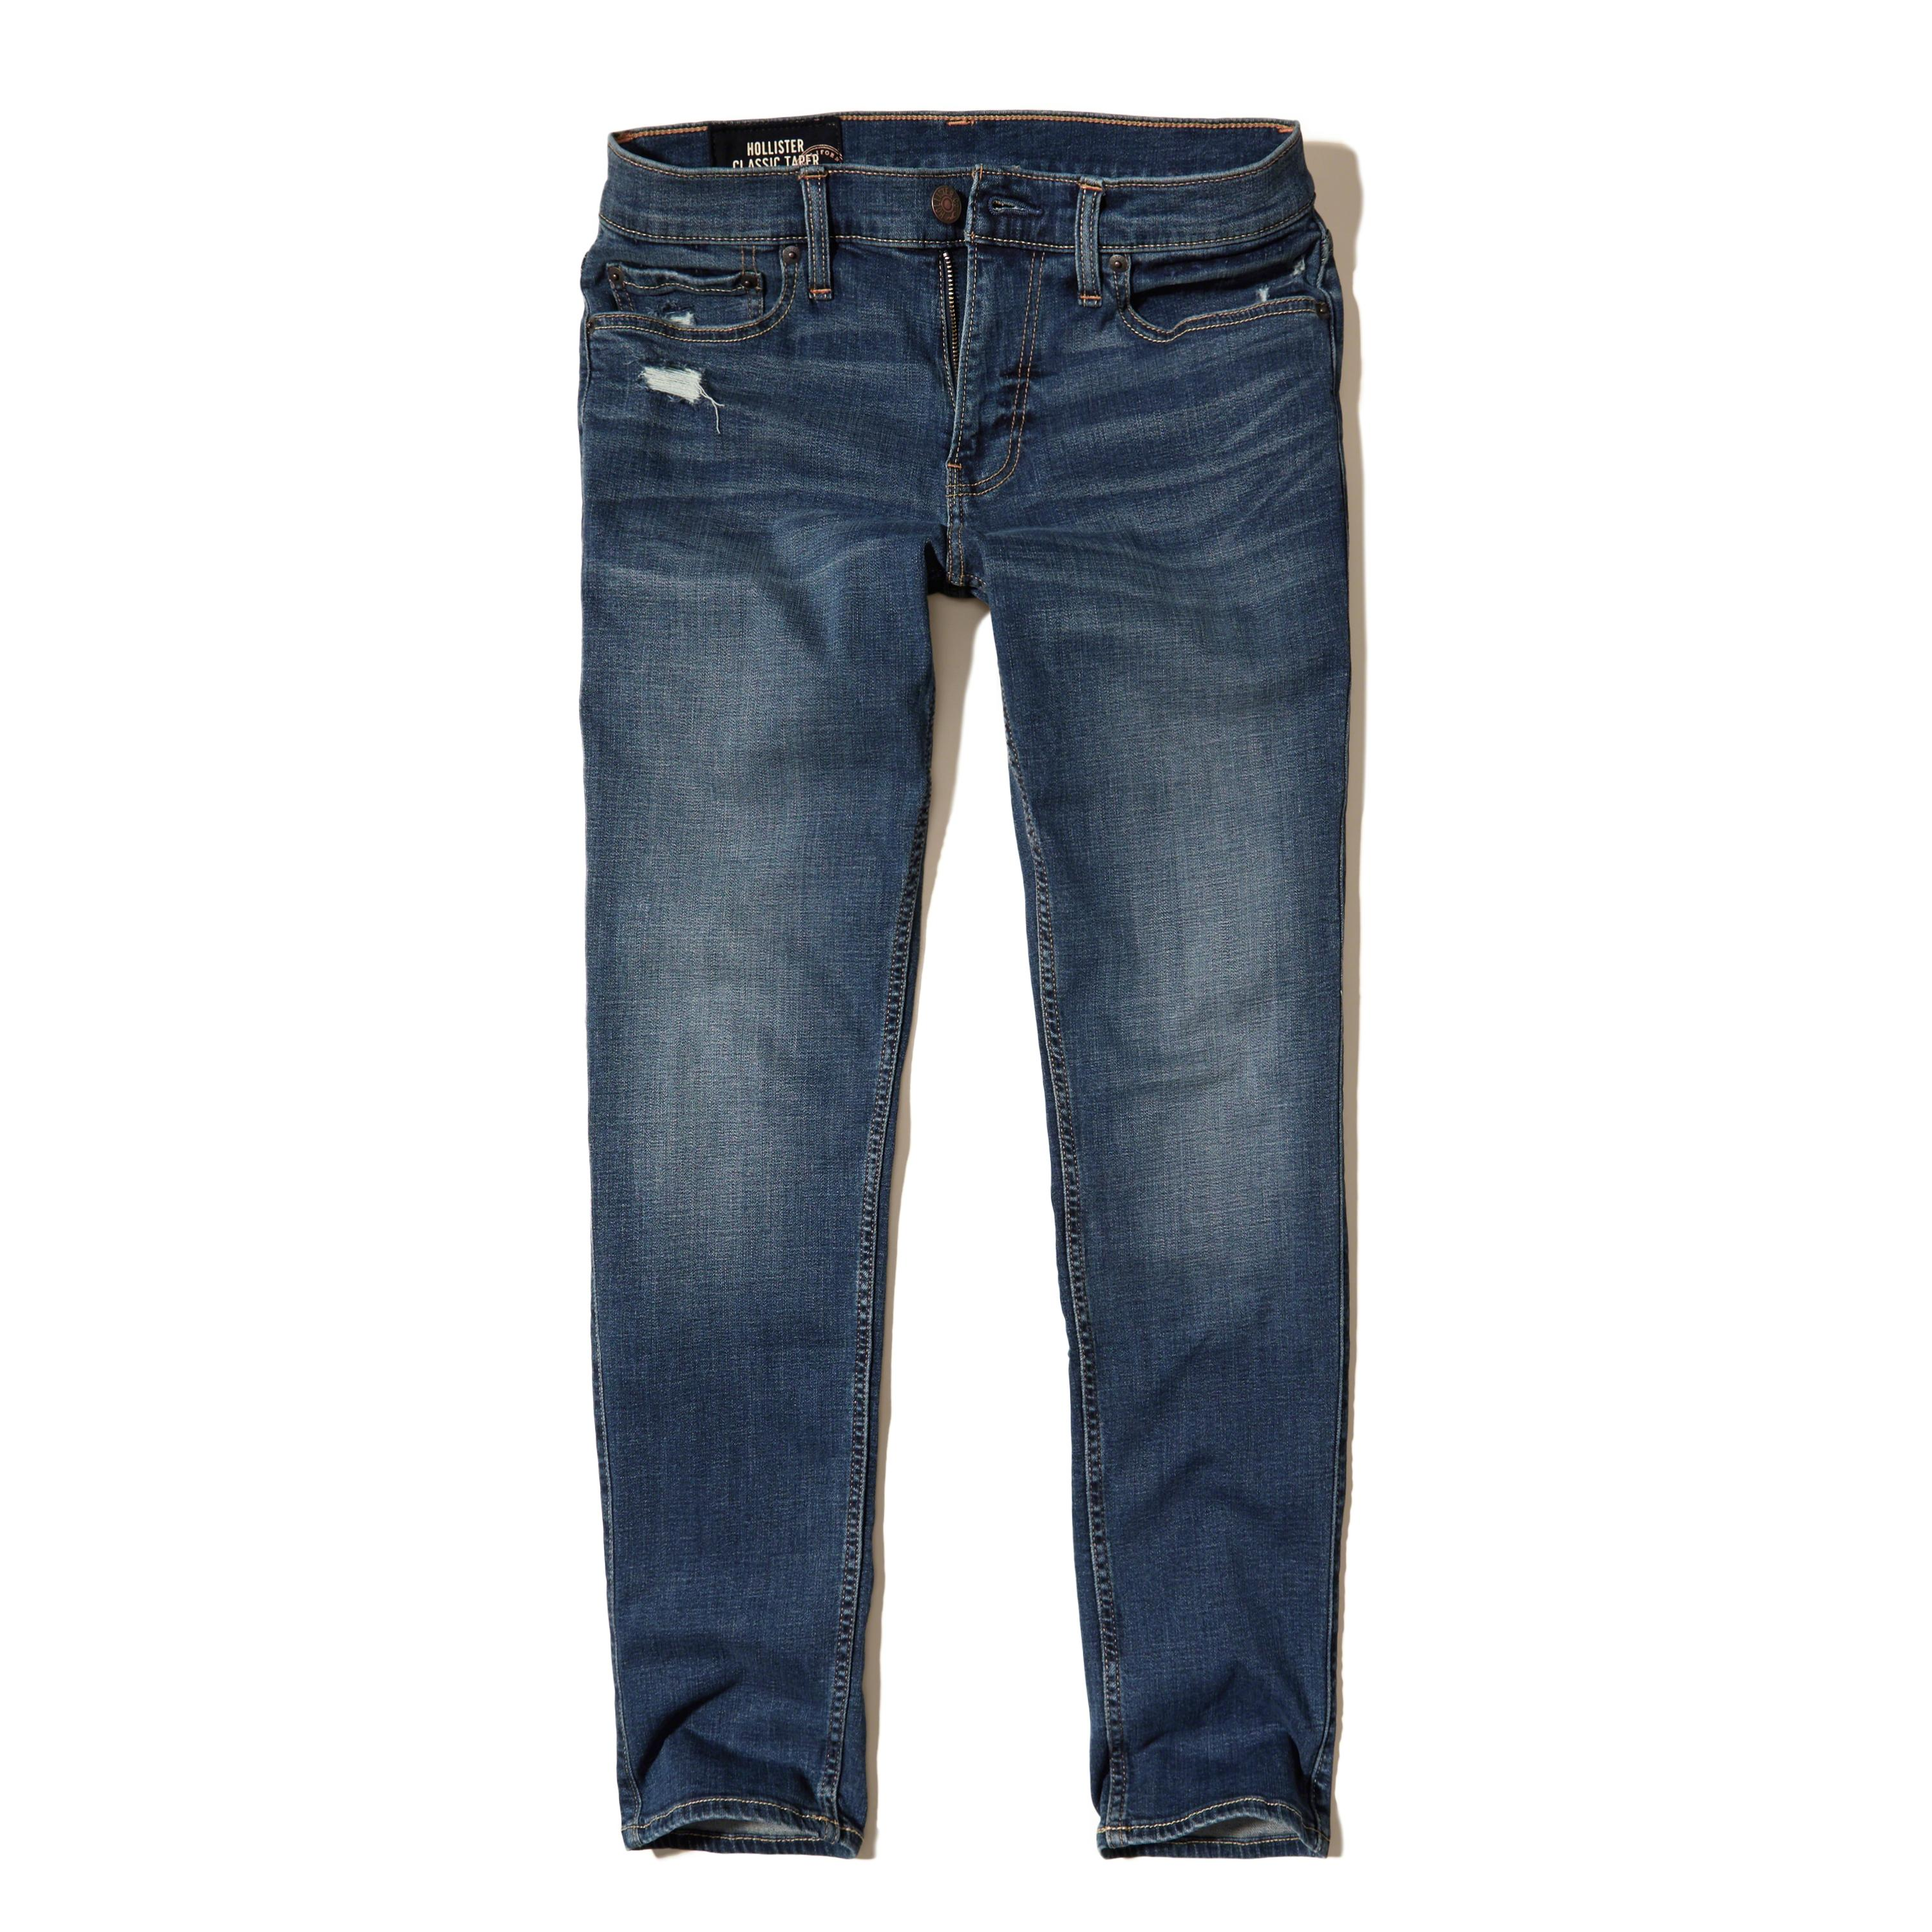 Lyst - Hollister Classic Taper Jeans for Men